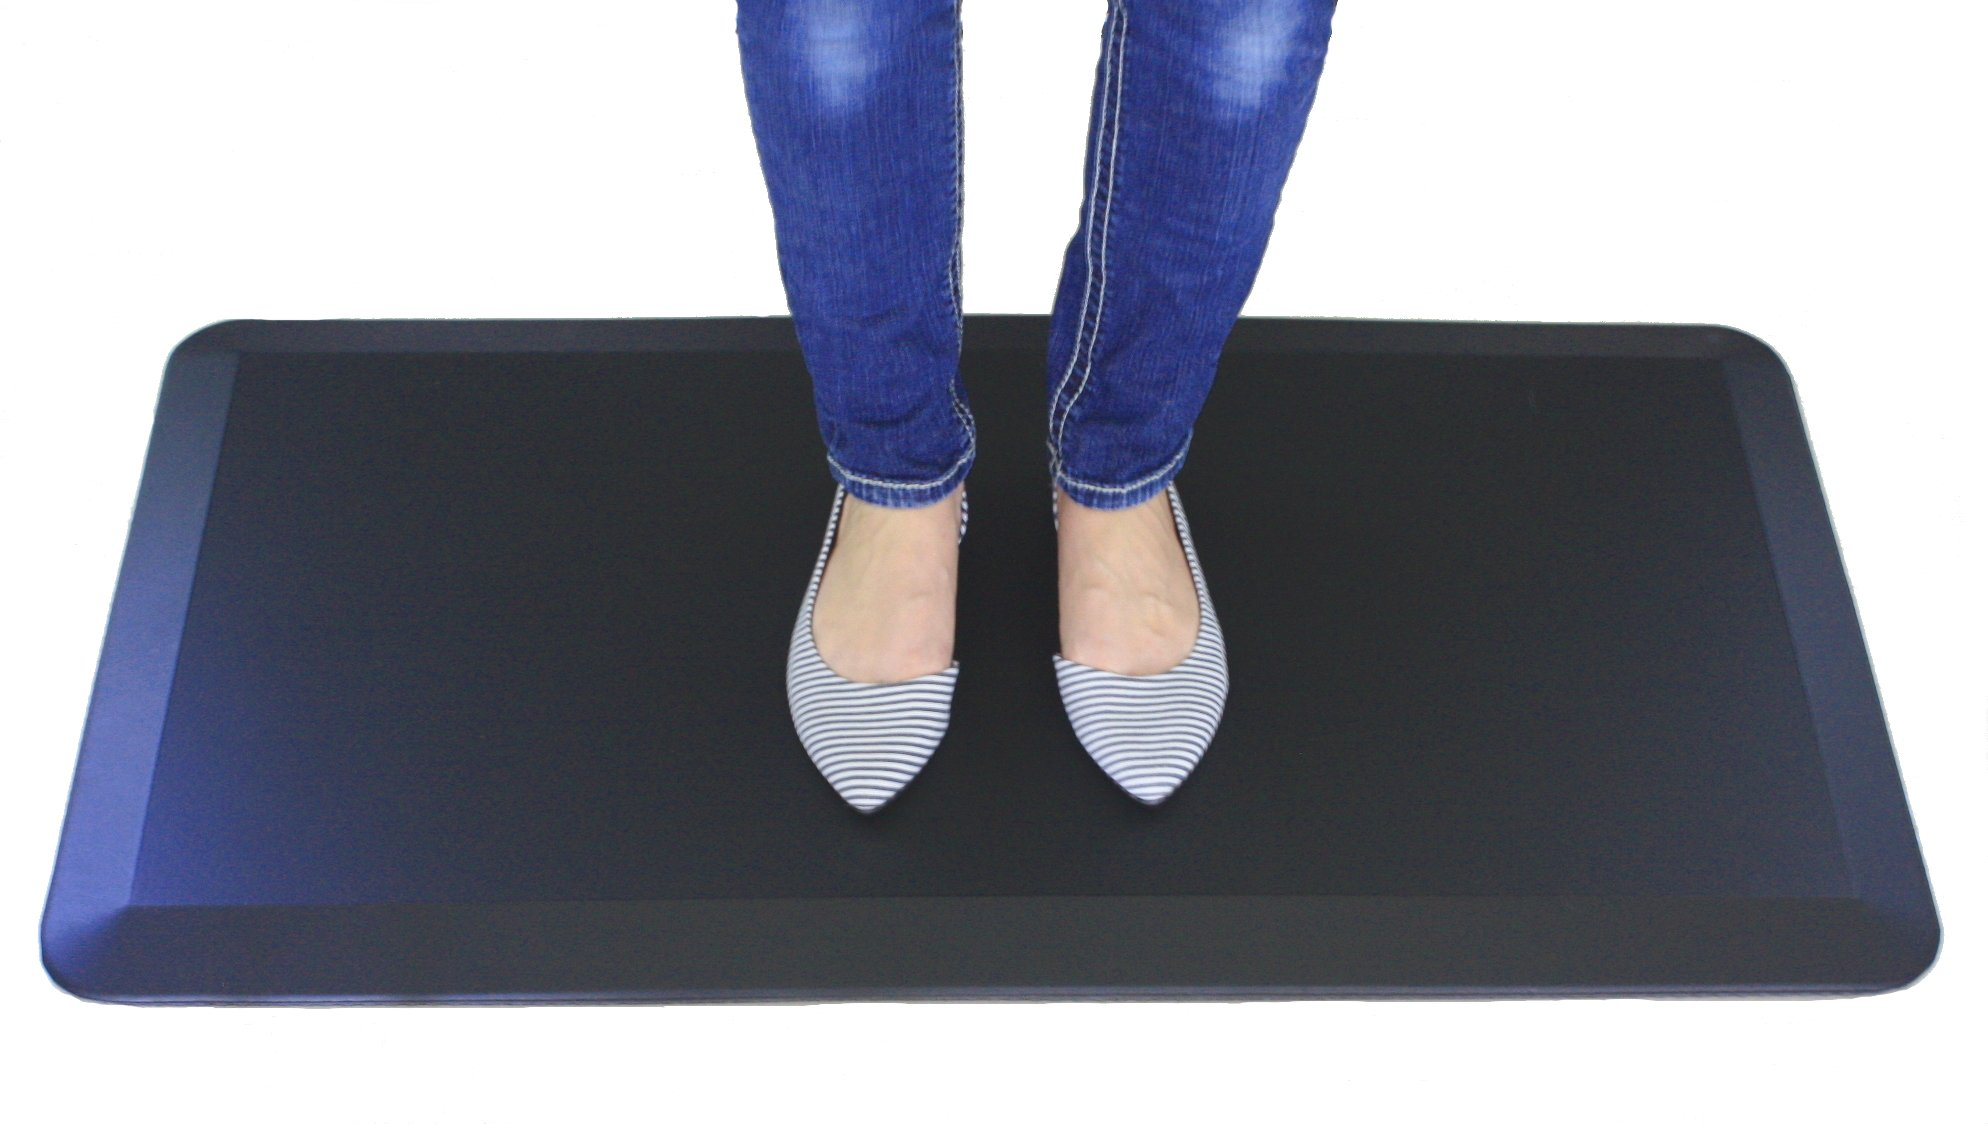 Stand Up Mat for Standing Desk, Comfortably Stand for Hours While Significantly Reducing Upright Stress on Your Back, Hips, Knees and Ankles. It is a Comfort Mat and an Anti Fatigue Mat